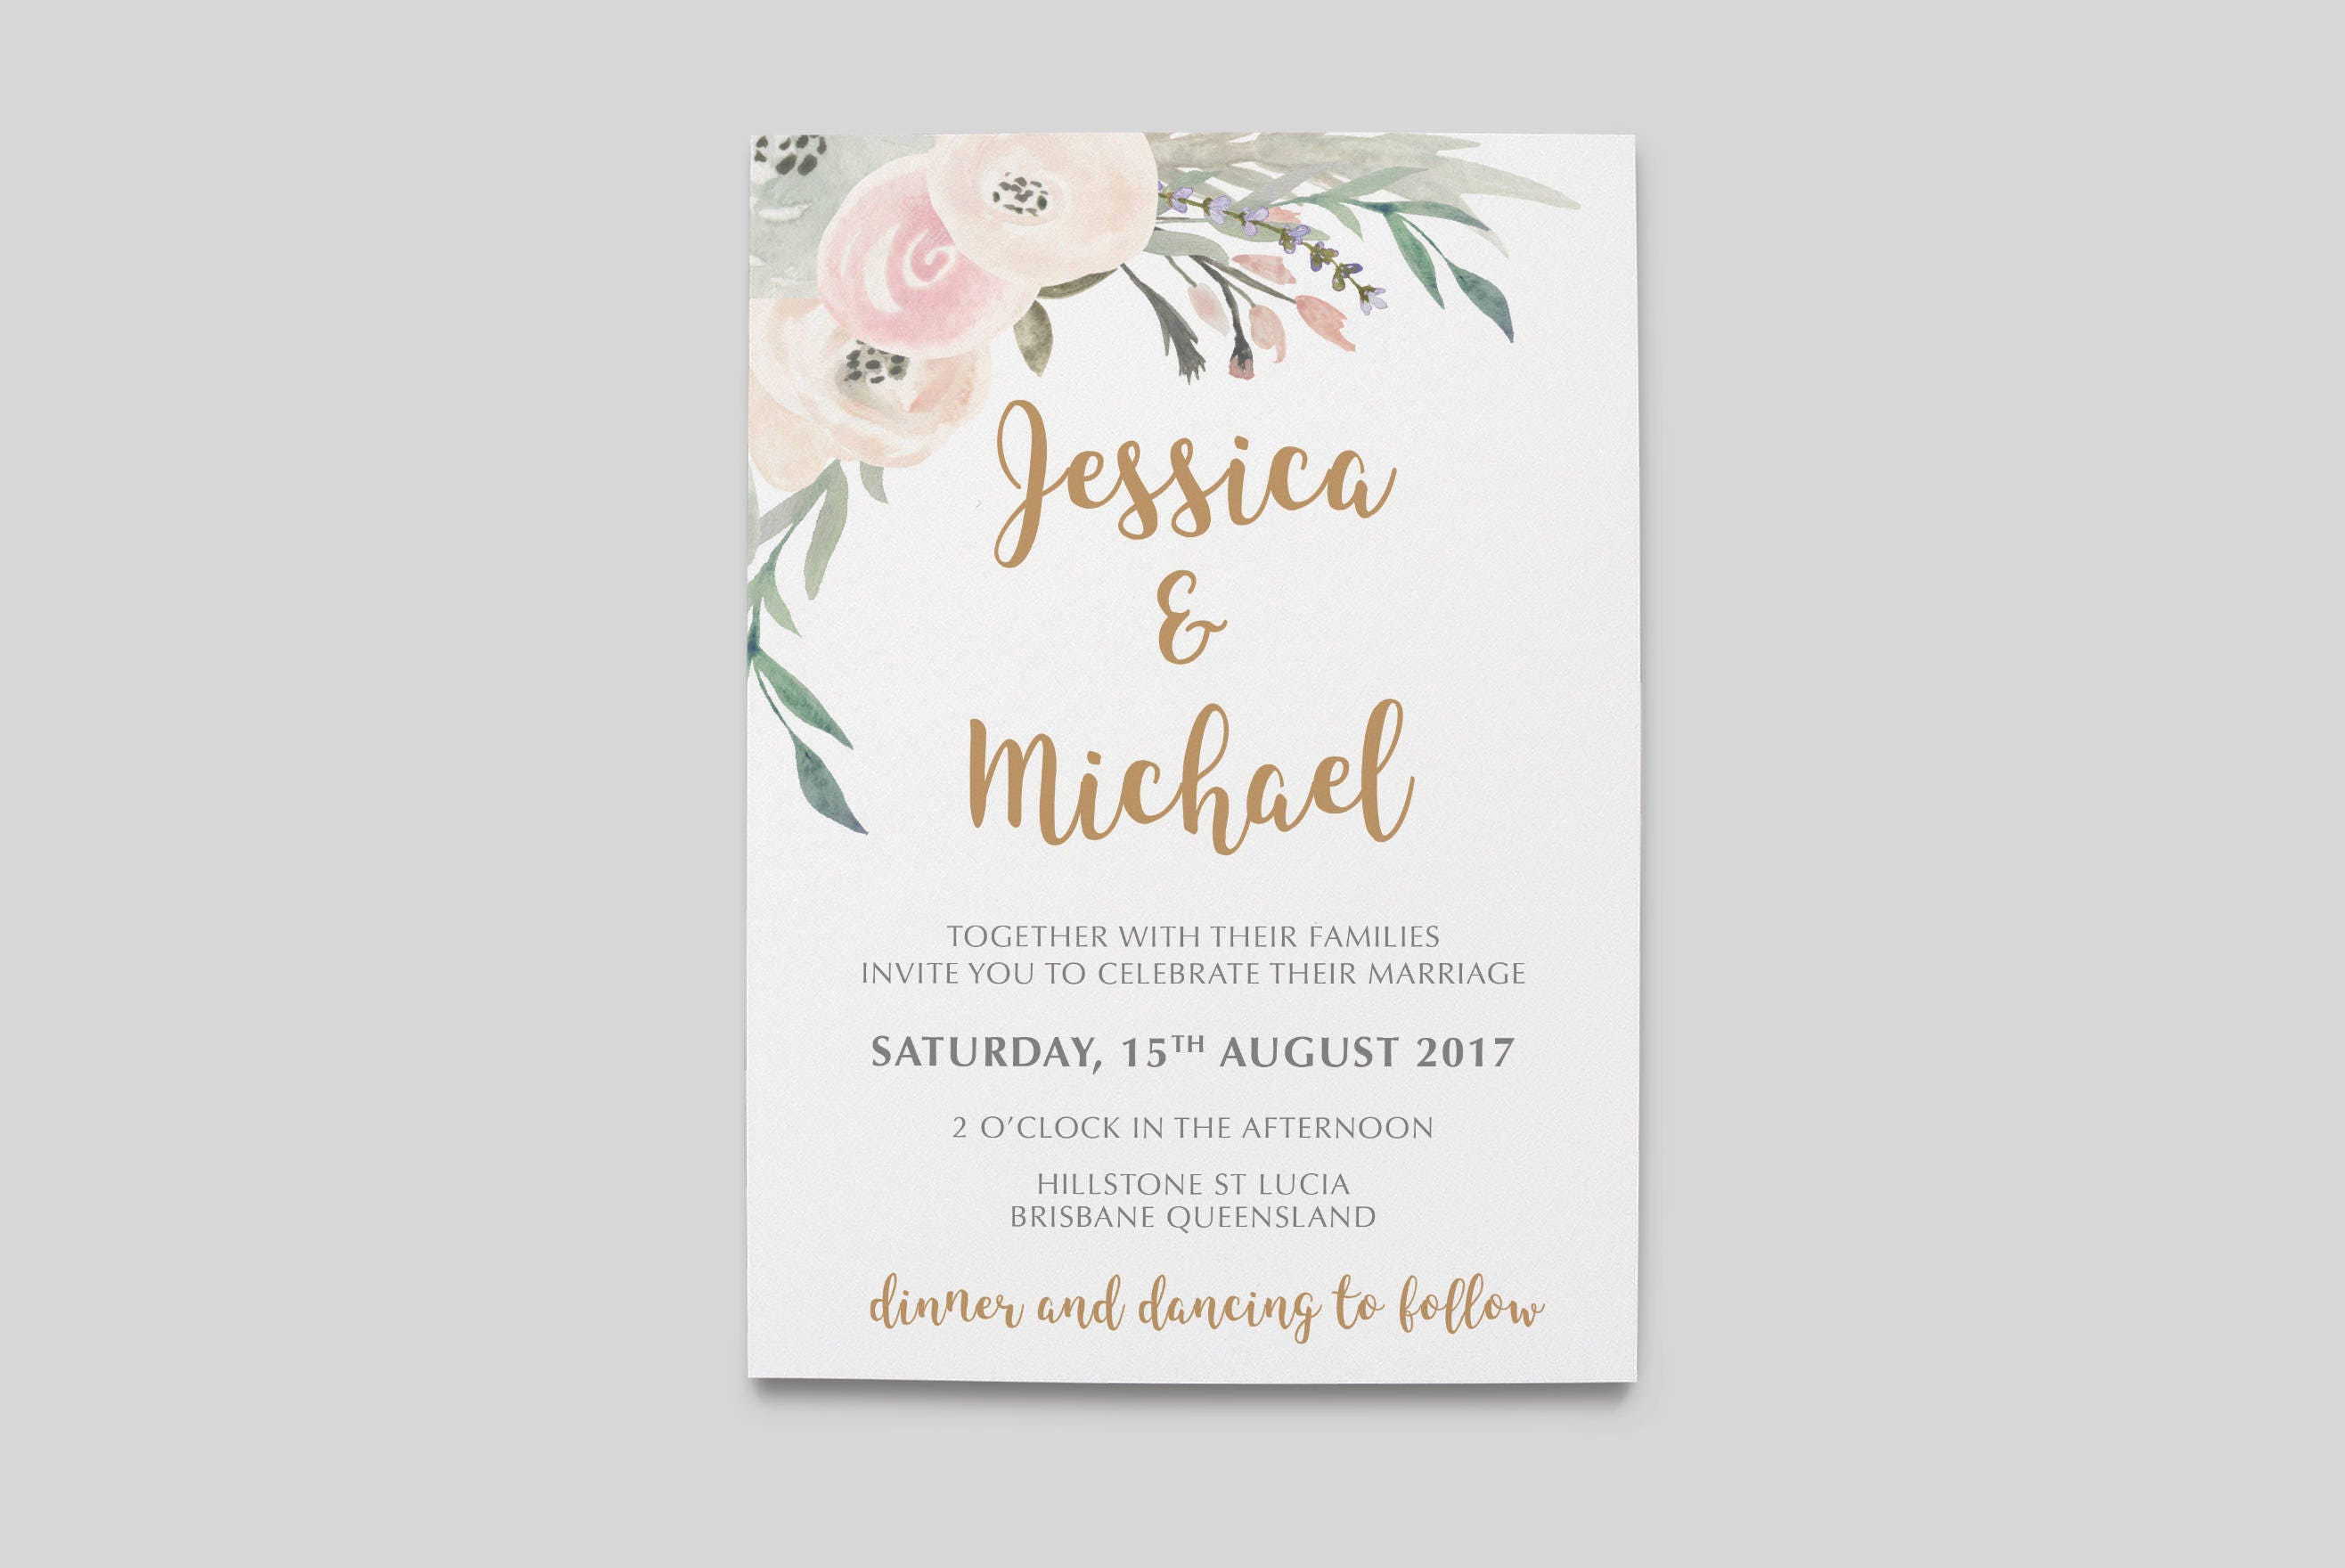 vistaprint wedding invitations reviews uk yaseen for With vistaprint wedding invitations 50 off